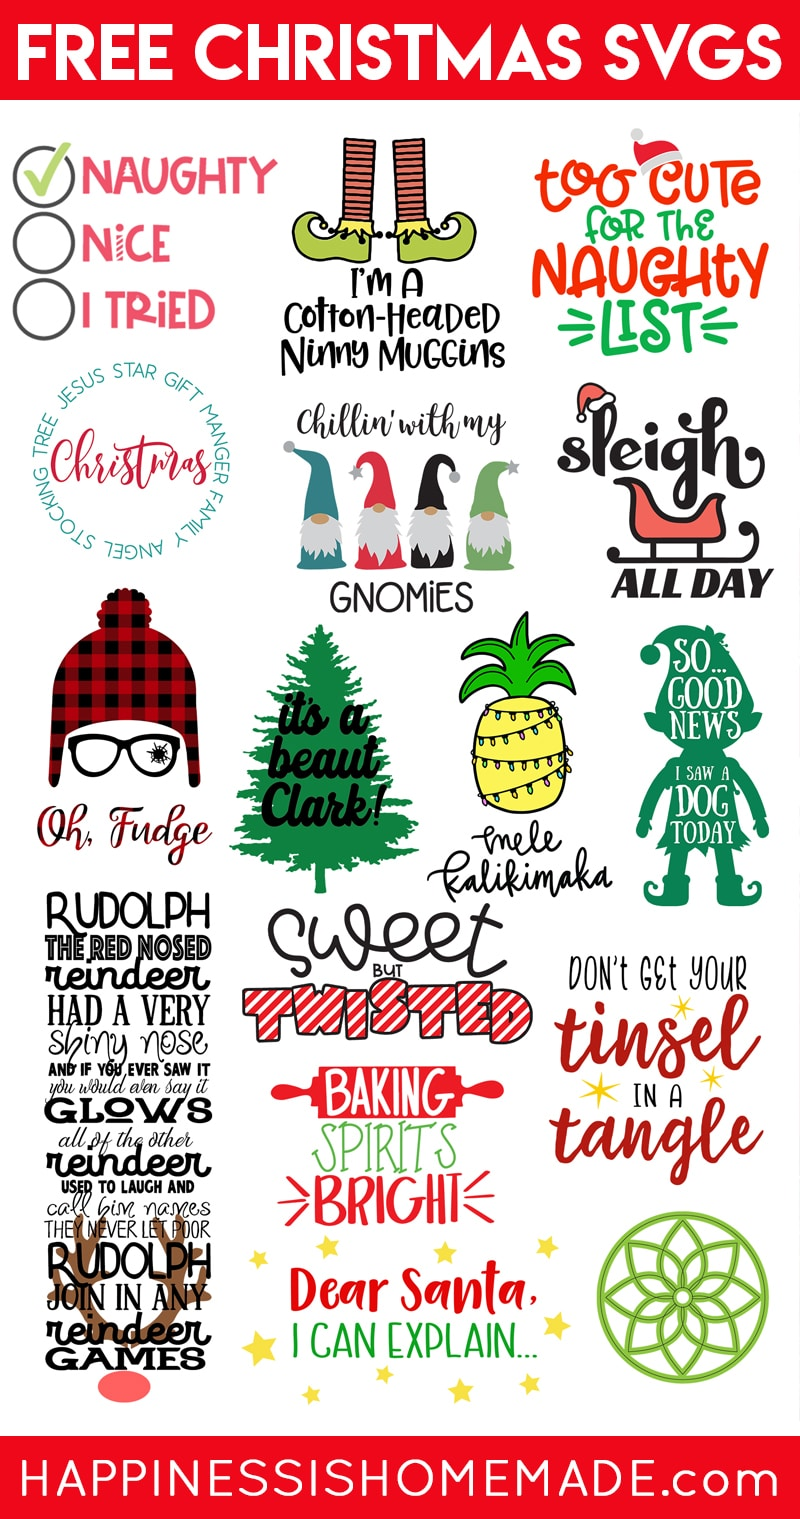 Download Free Christmas SVG Files - Happiness is Homemade